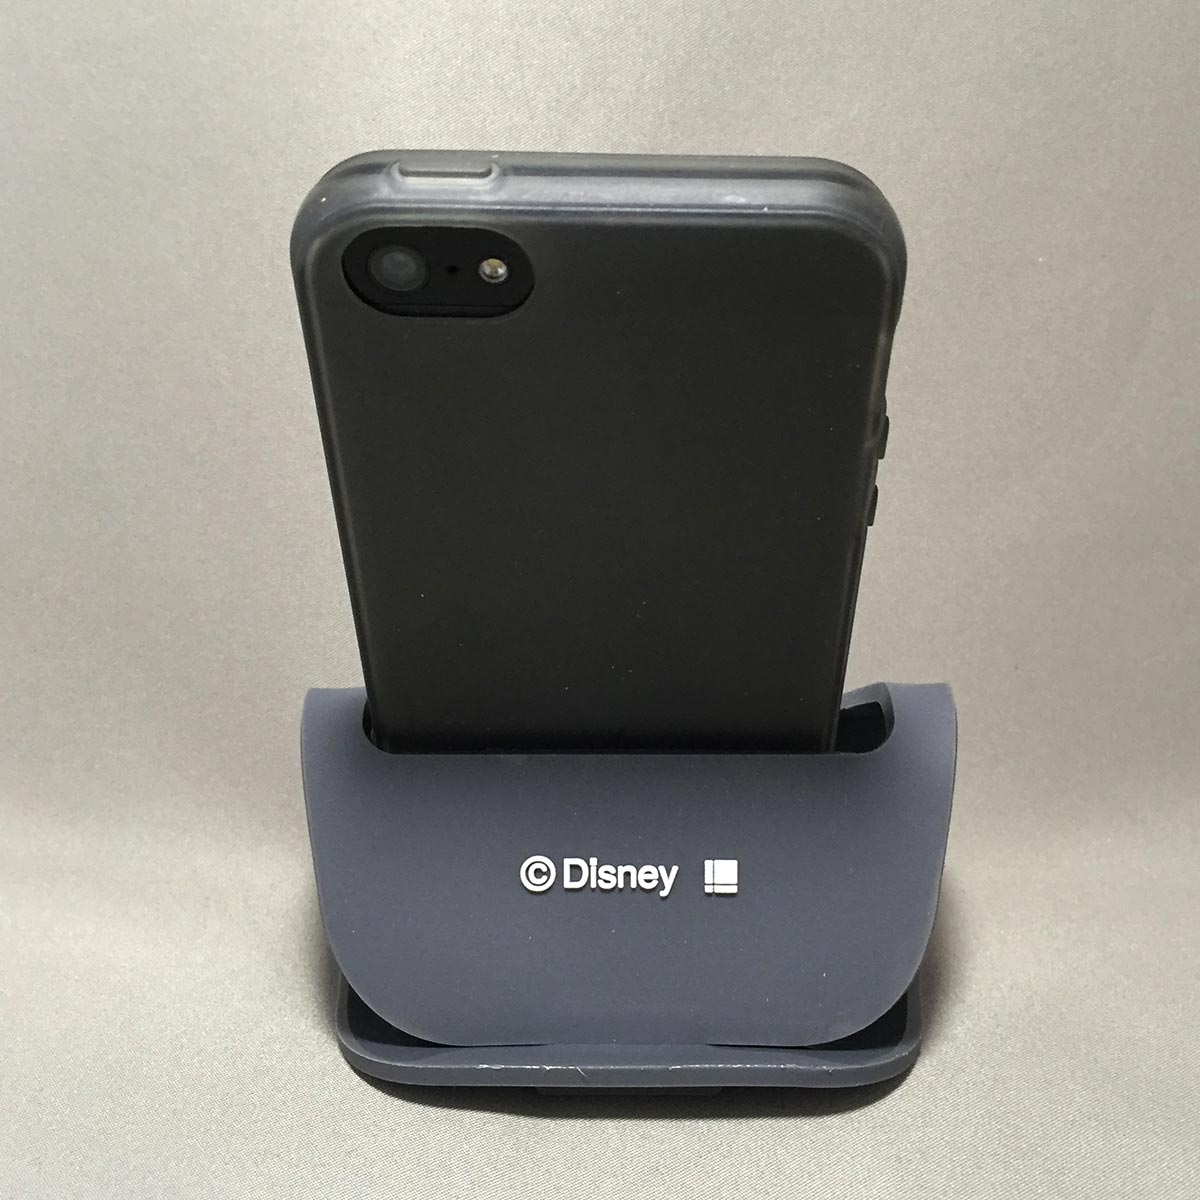 Mickey Mobile Rubber Stand - back view with iPhone